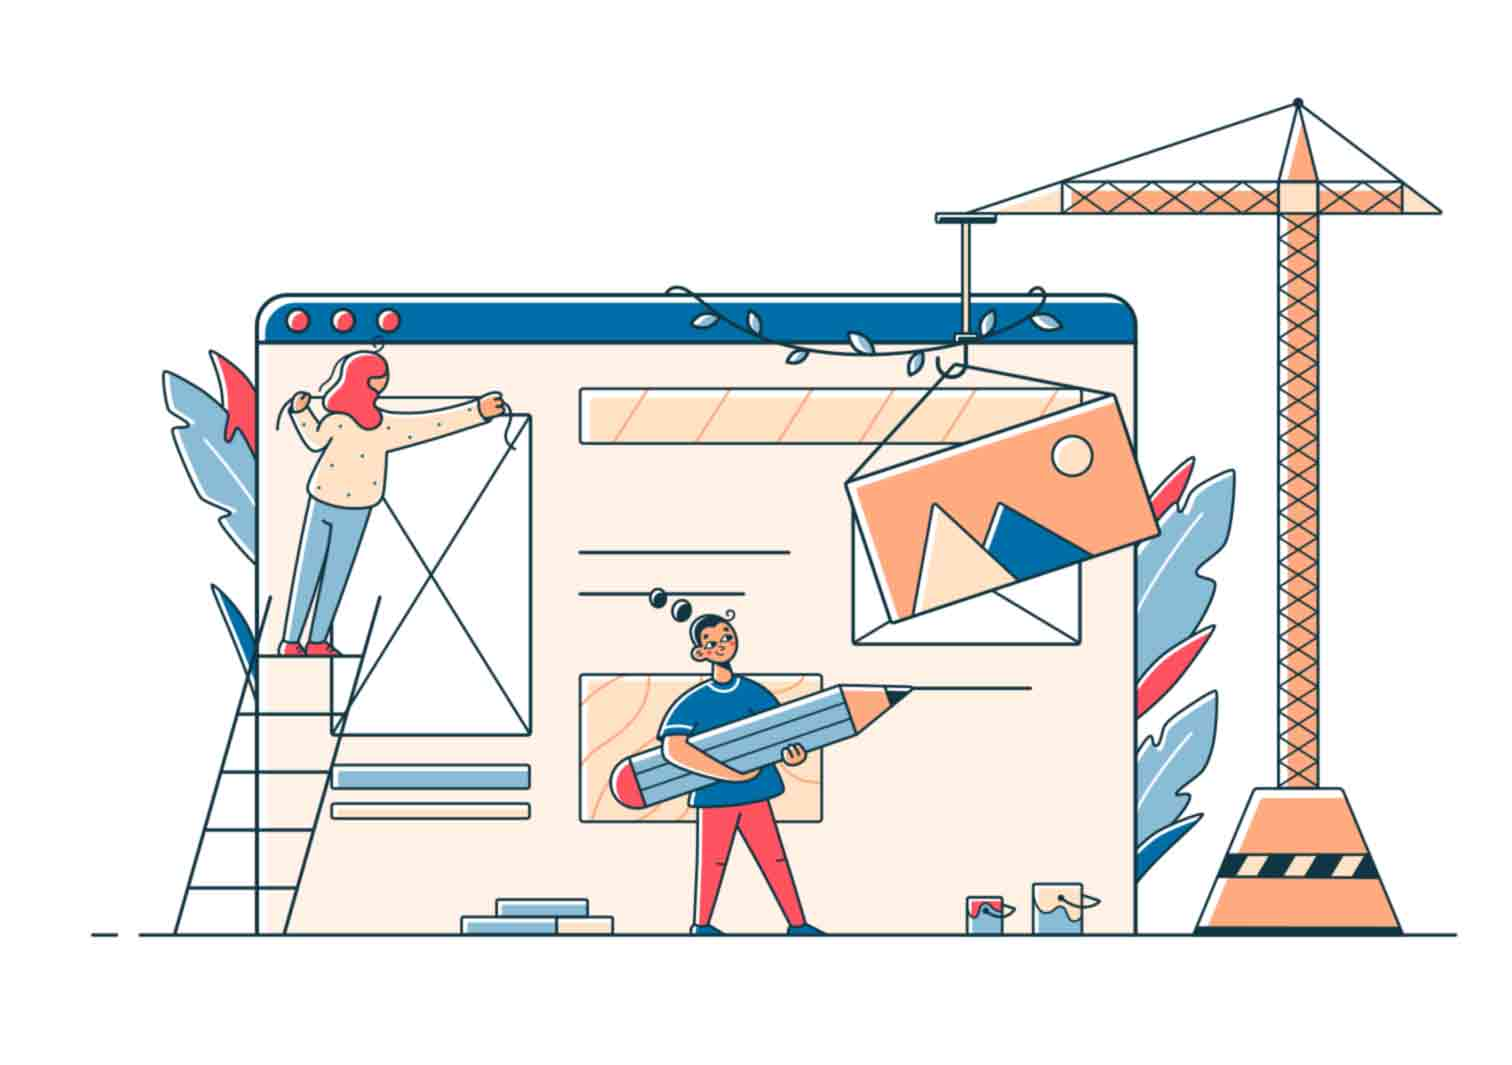 Vector illustrations with characters in various situations made in linear style with limited color pallet.